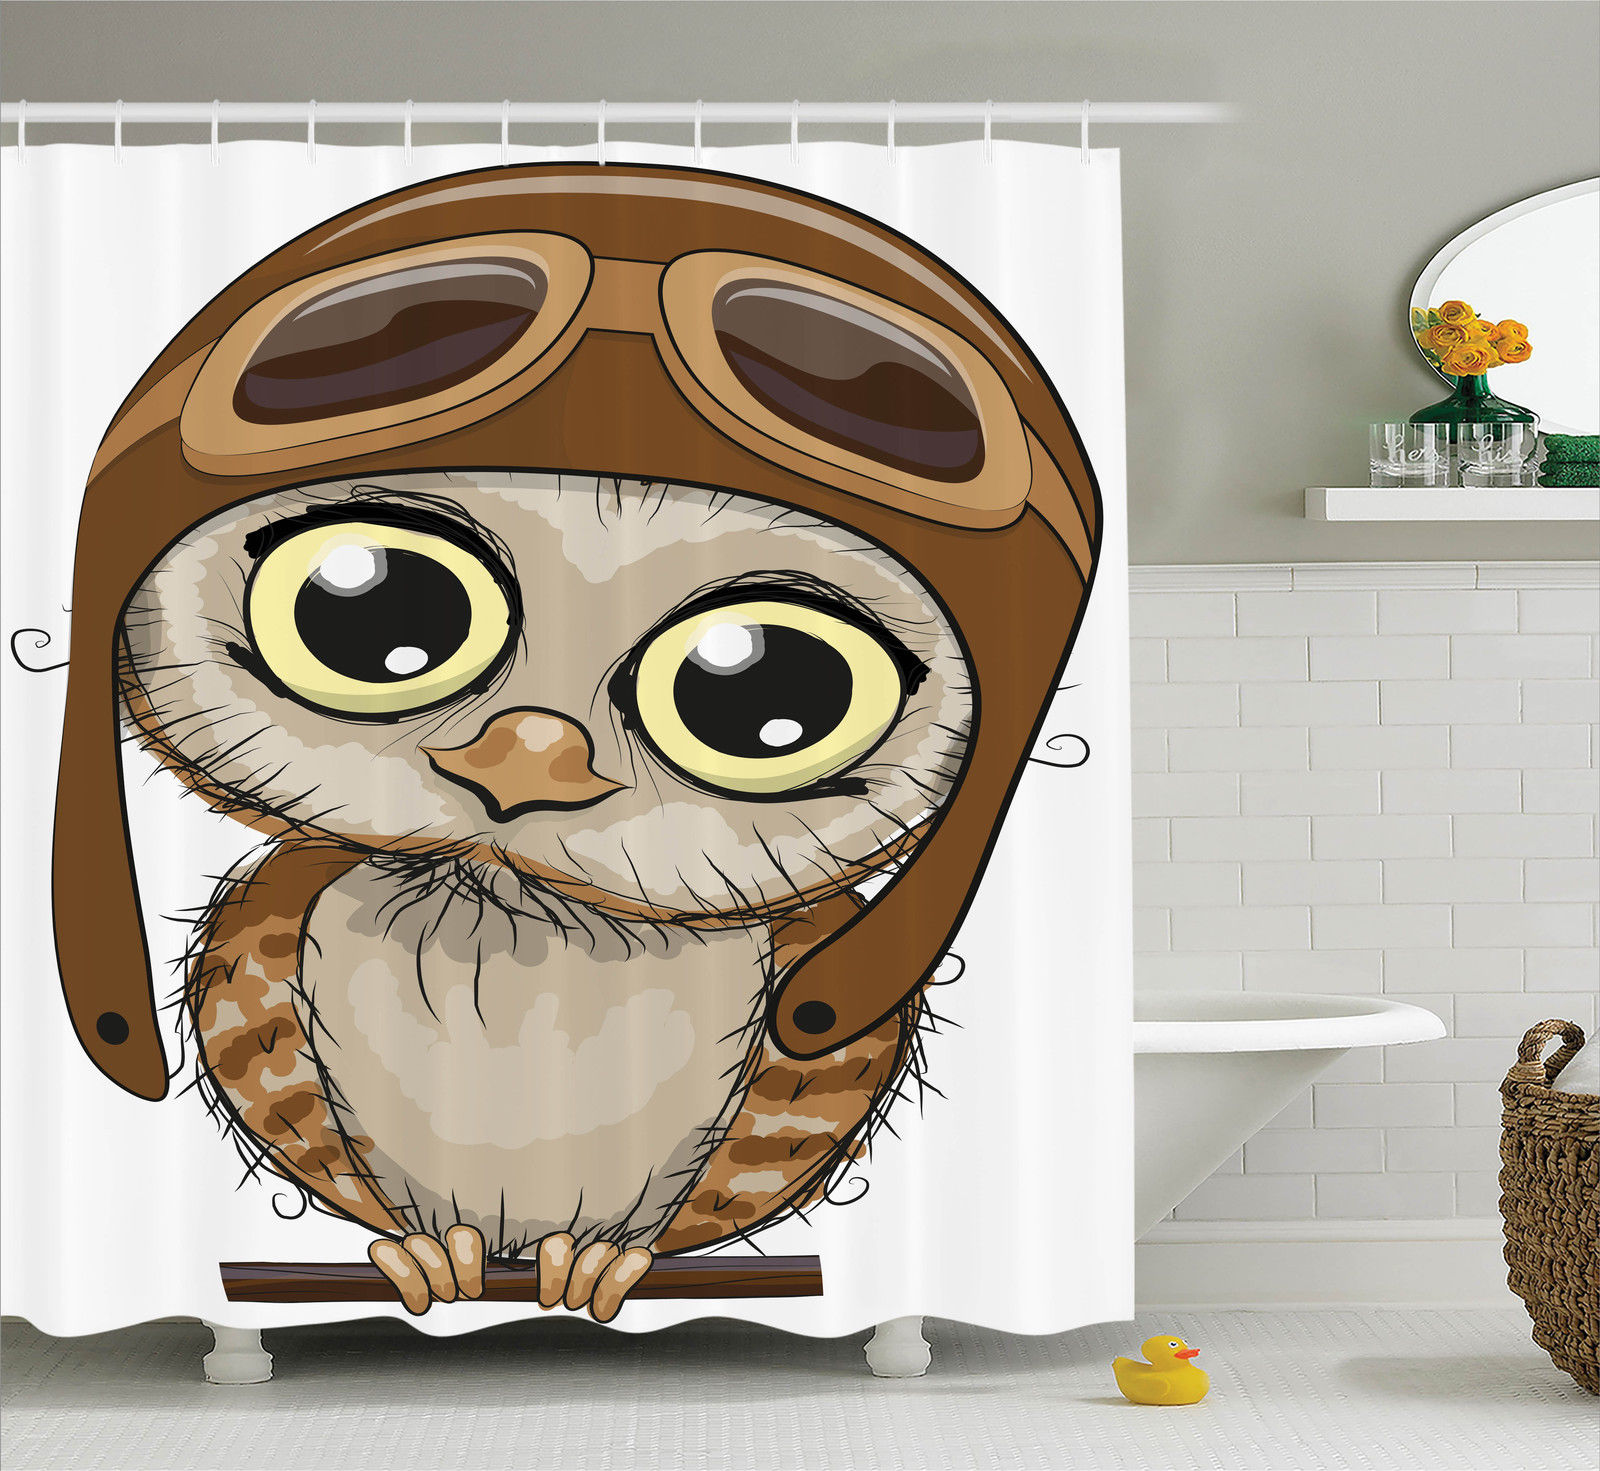 Owls Home Decor Shower Curtain Set, Owl In A Pilot Hat Big Eyes Caricature  Characters